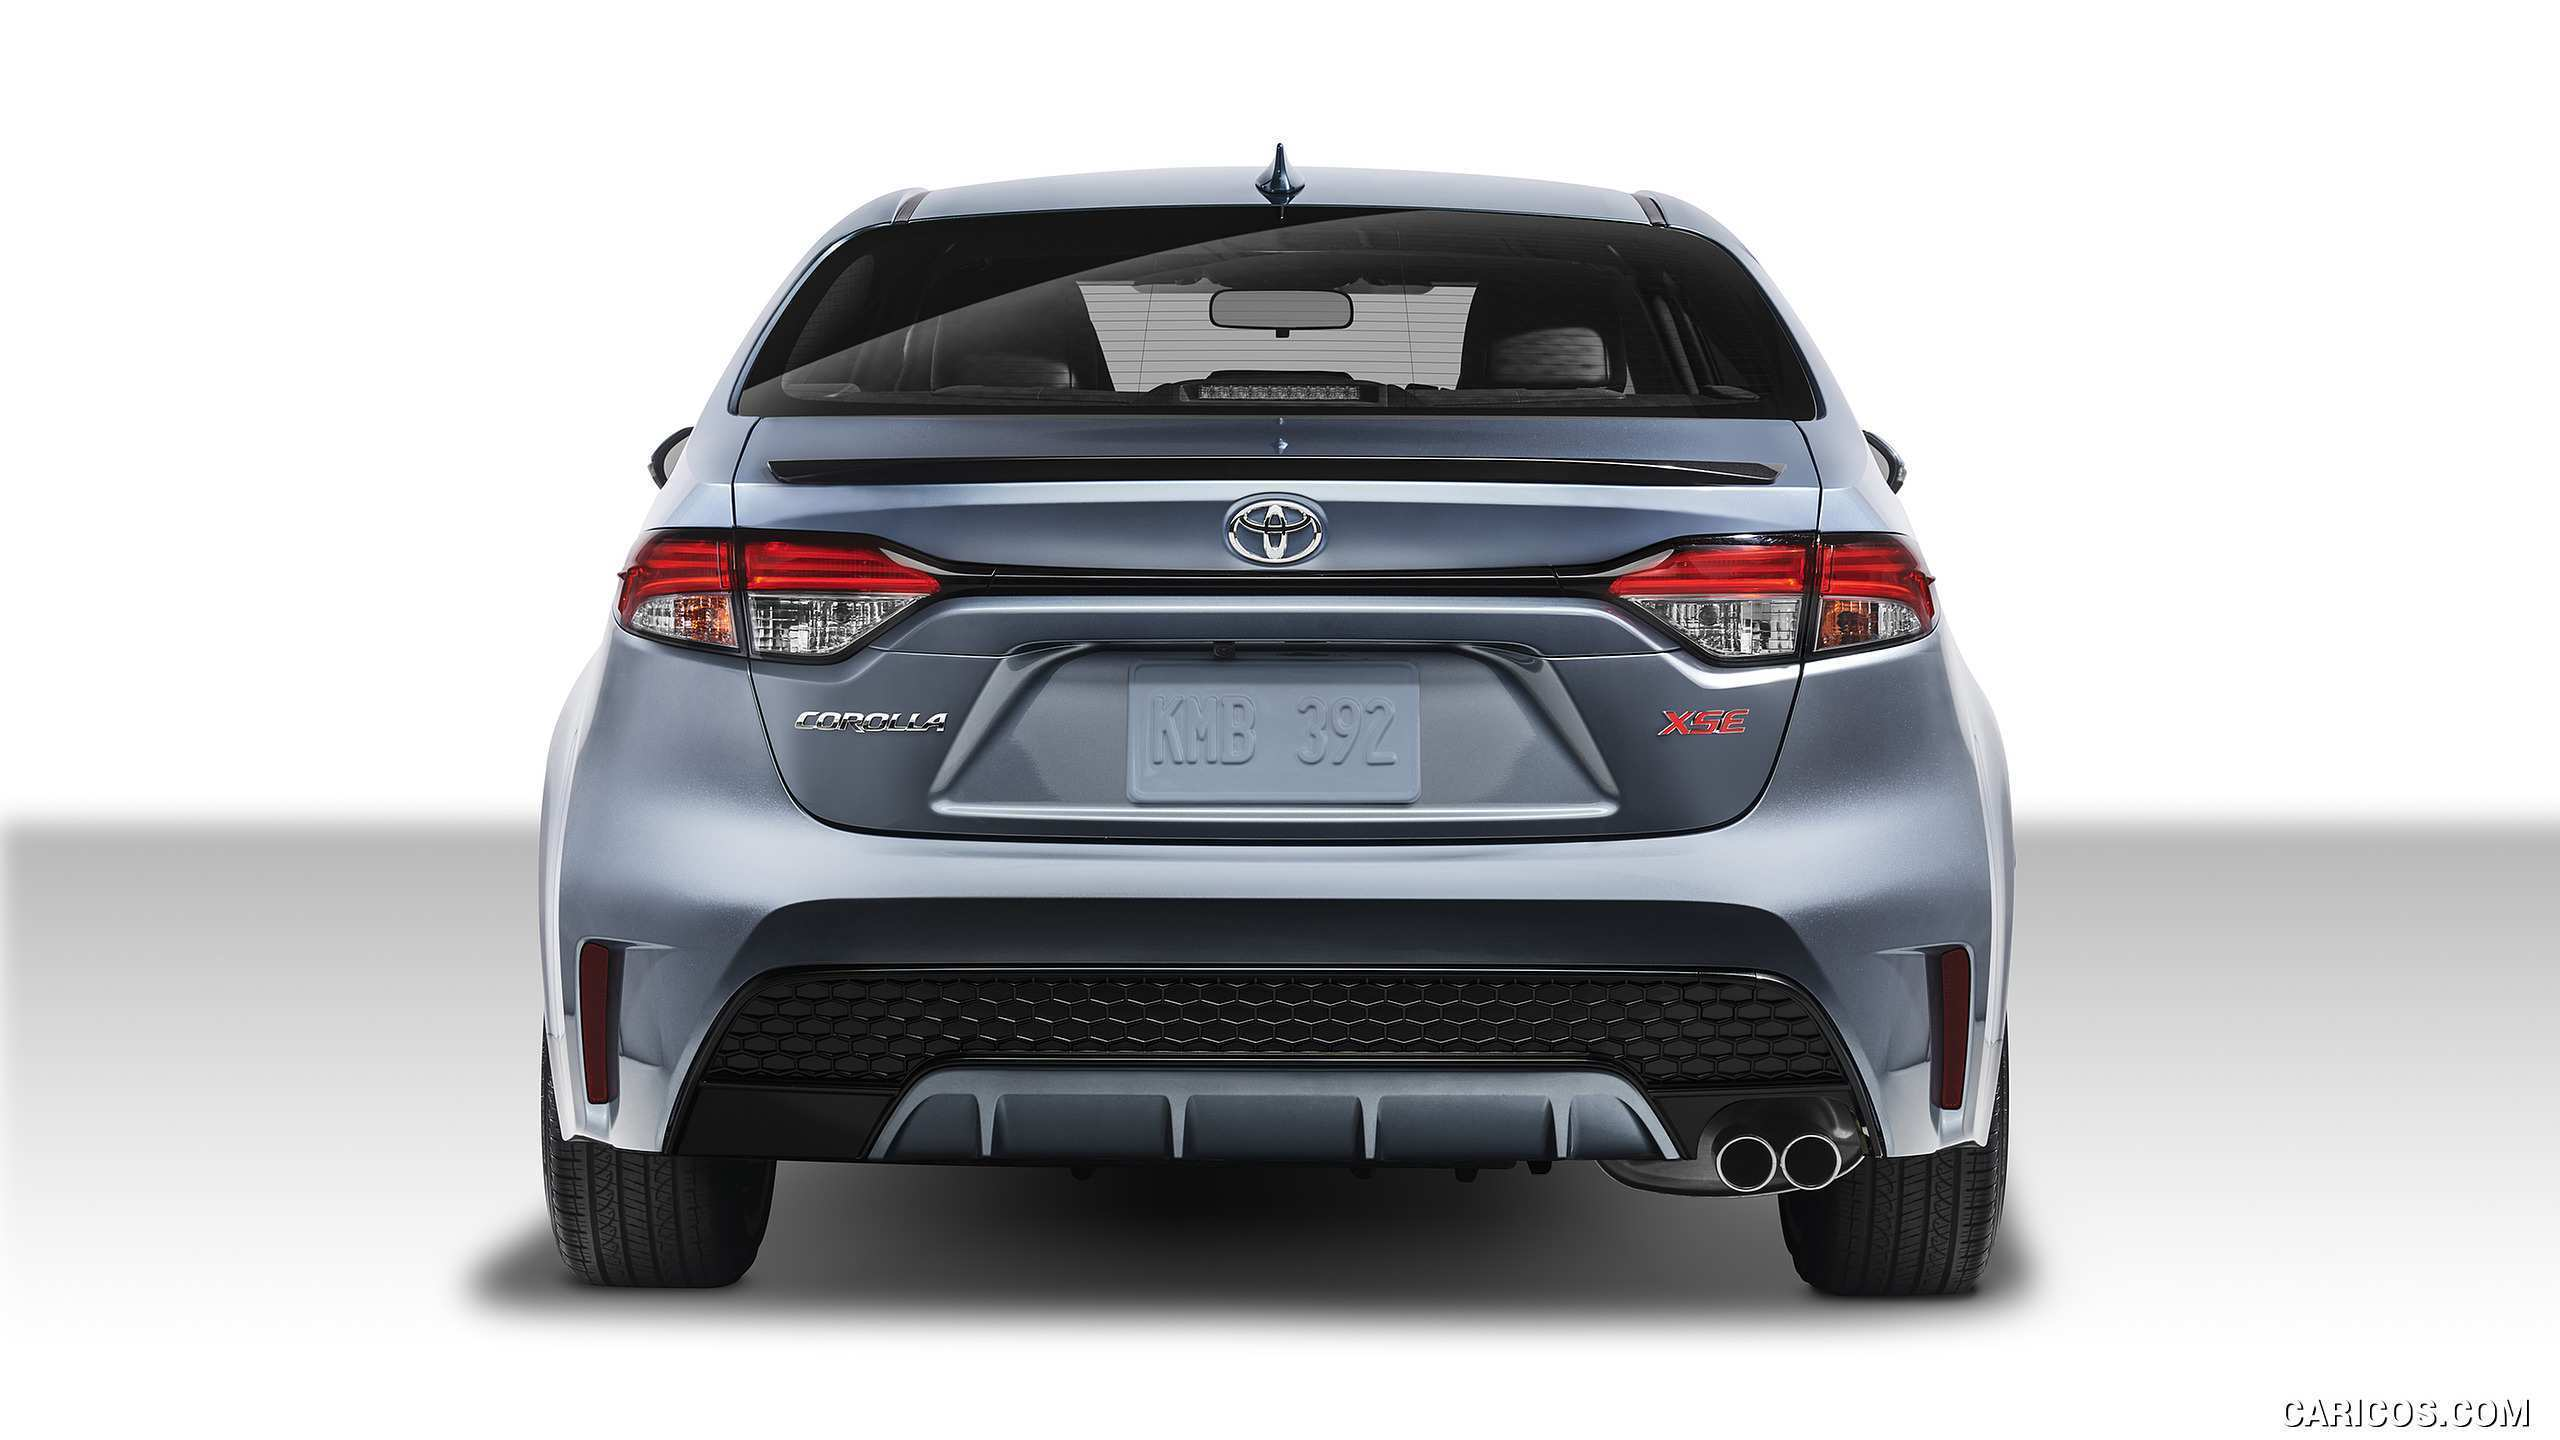 99 Best Review Toyota 2020 Xse Spesification for Toyota 2020 Xse